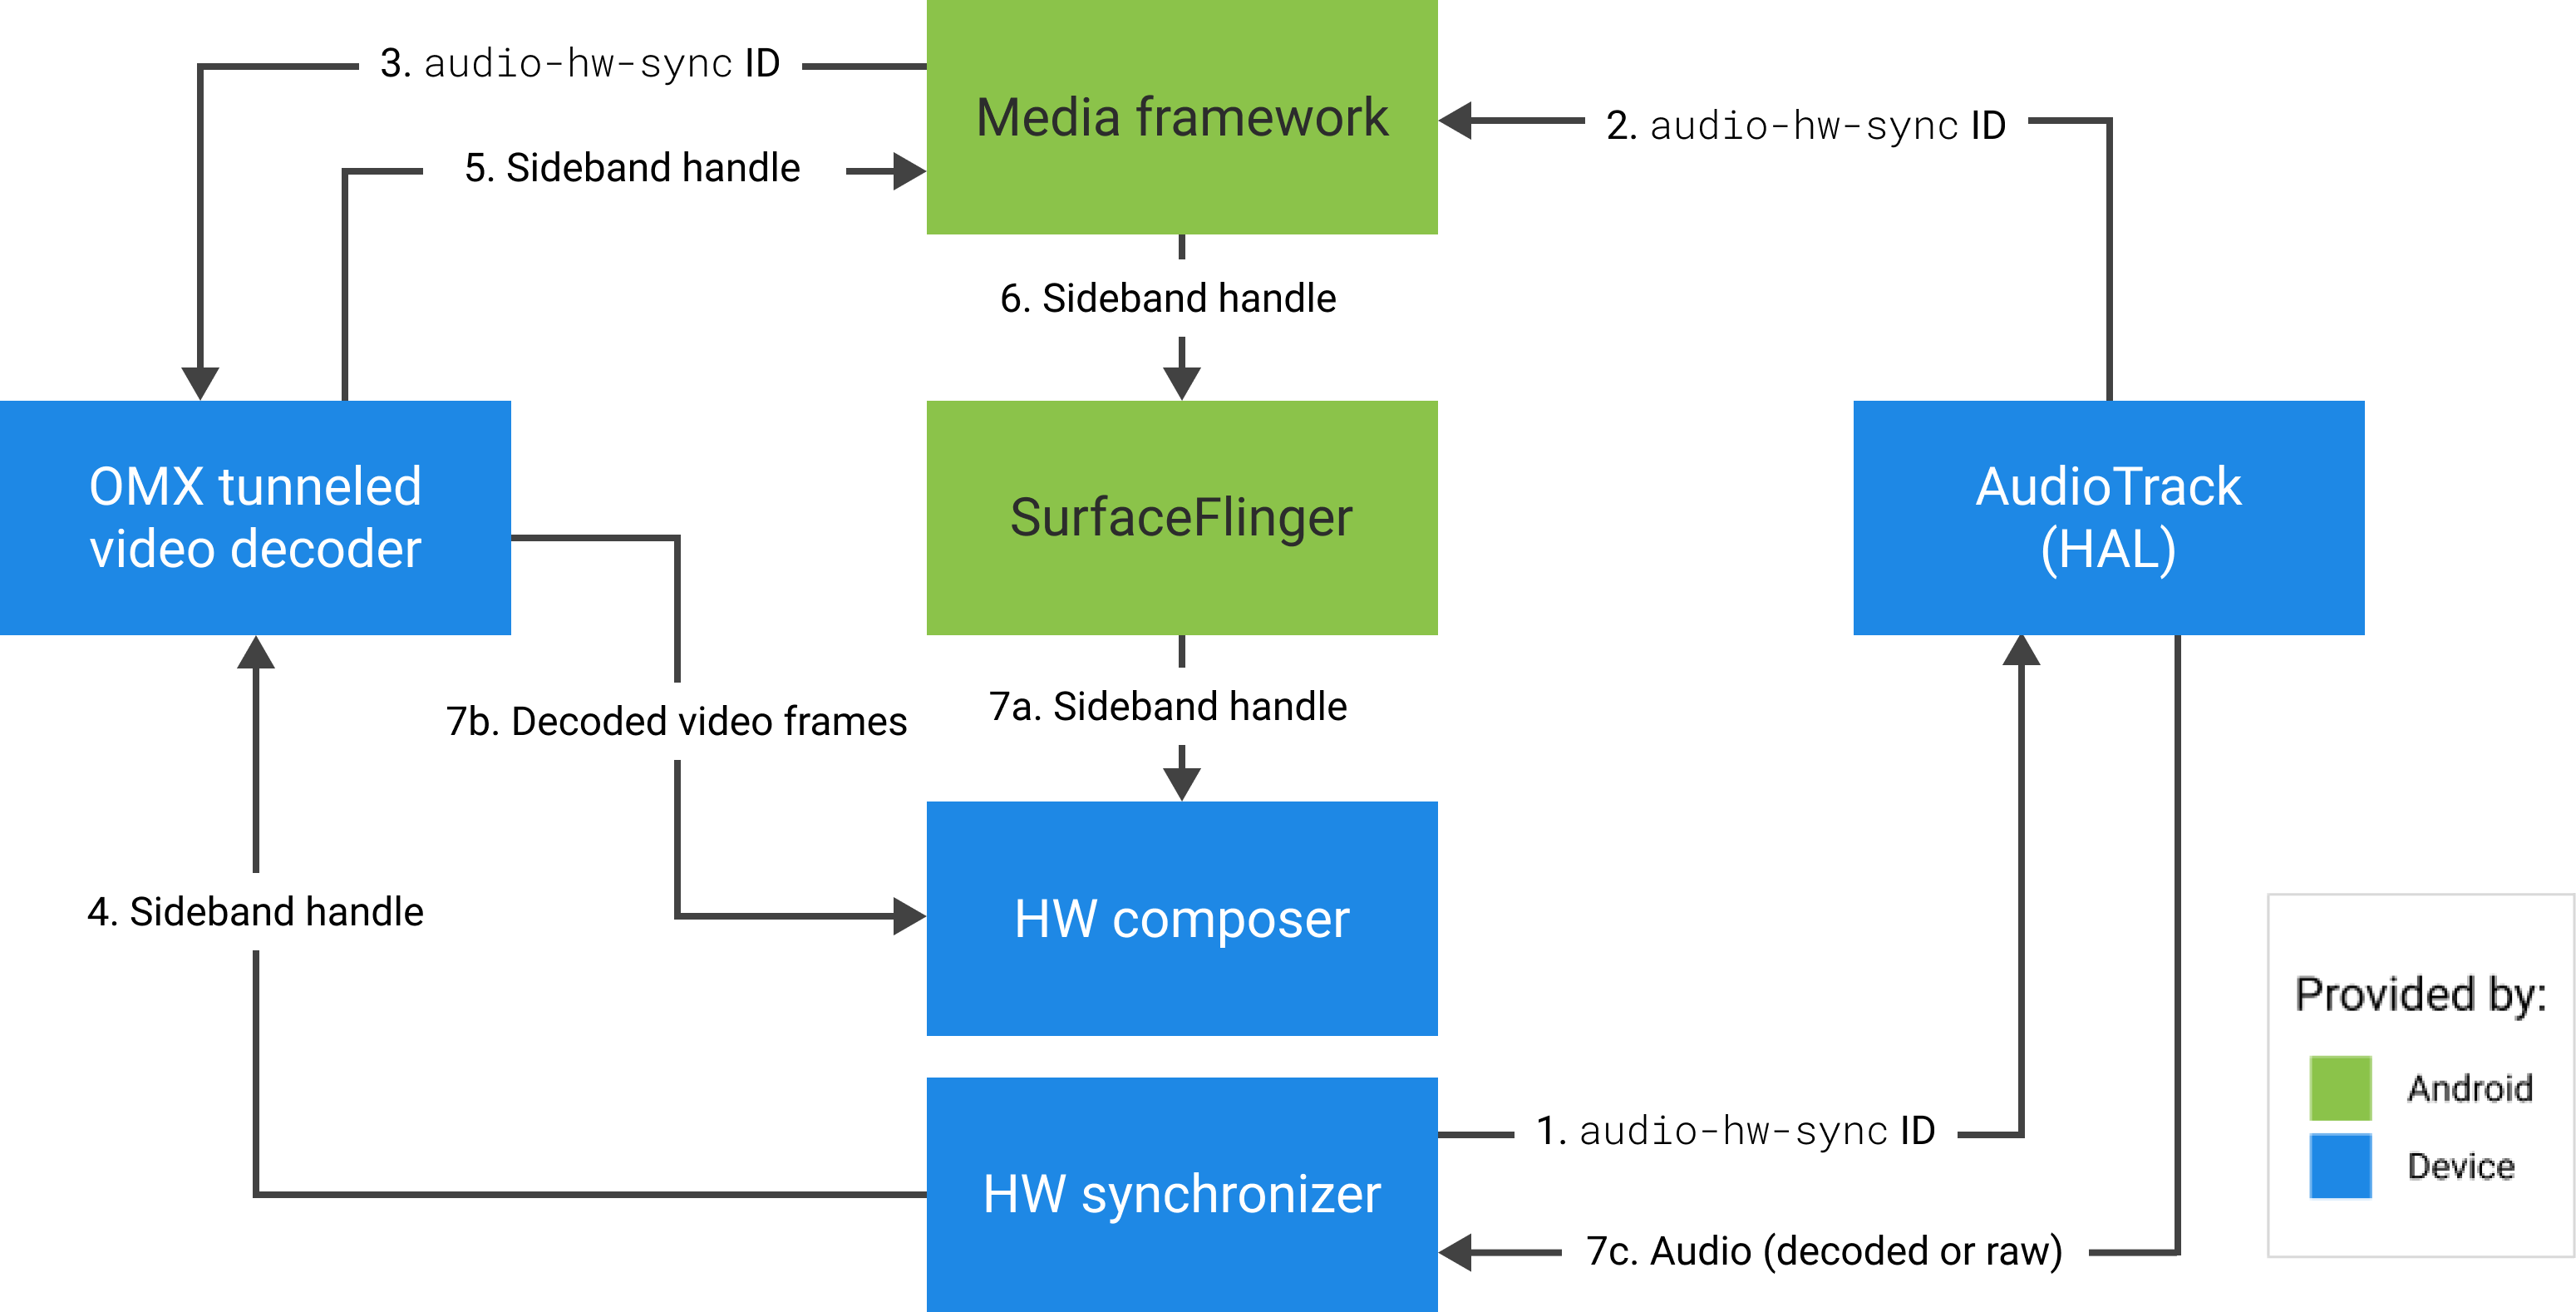 Hardware composer working with the HW (or kernel/driver) synchronizer to combine video frames (7b) with the latest composition (7a), to display the result at the correct time, based on the audio (7c)